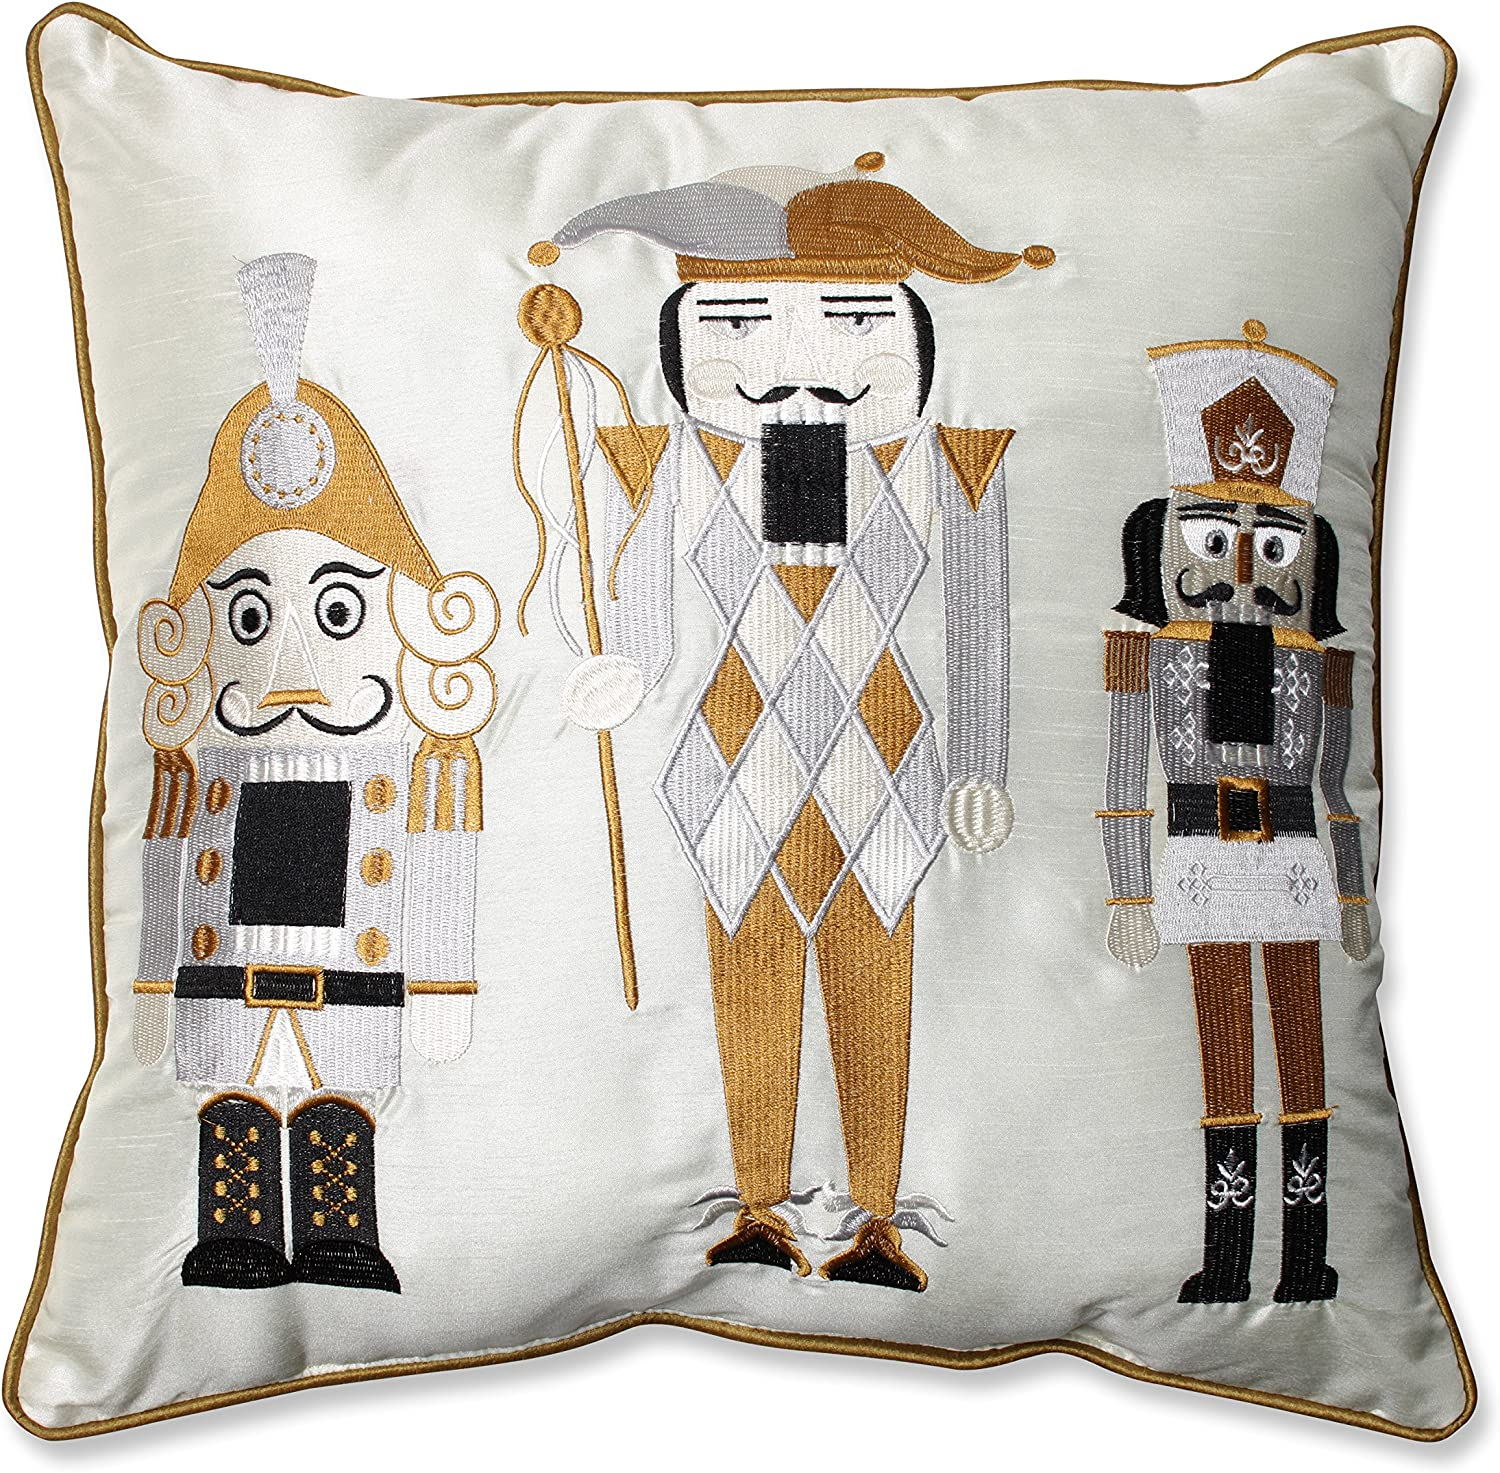 """Pillow Perfect Embroidered Nutcrackers Throw Pillow, 16.5"""" x 16.5"""", Gold/Silver"""